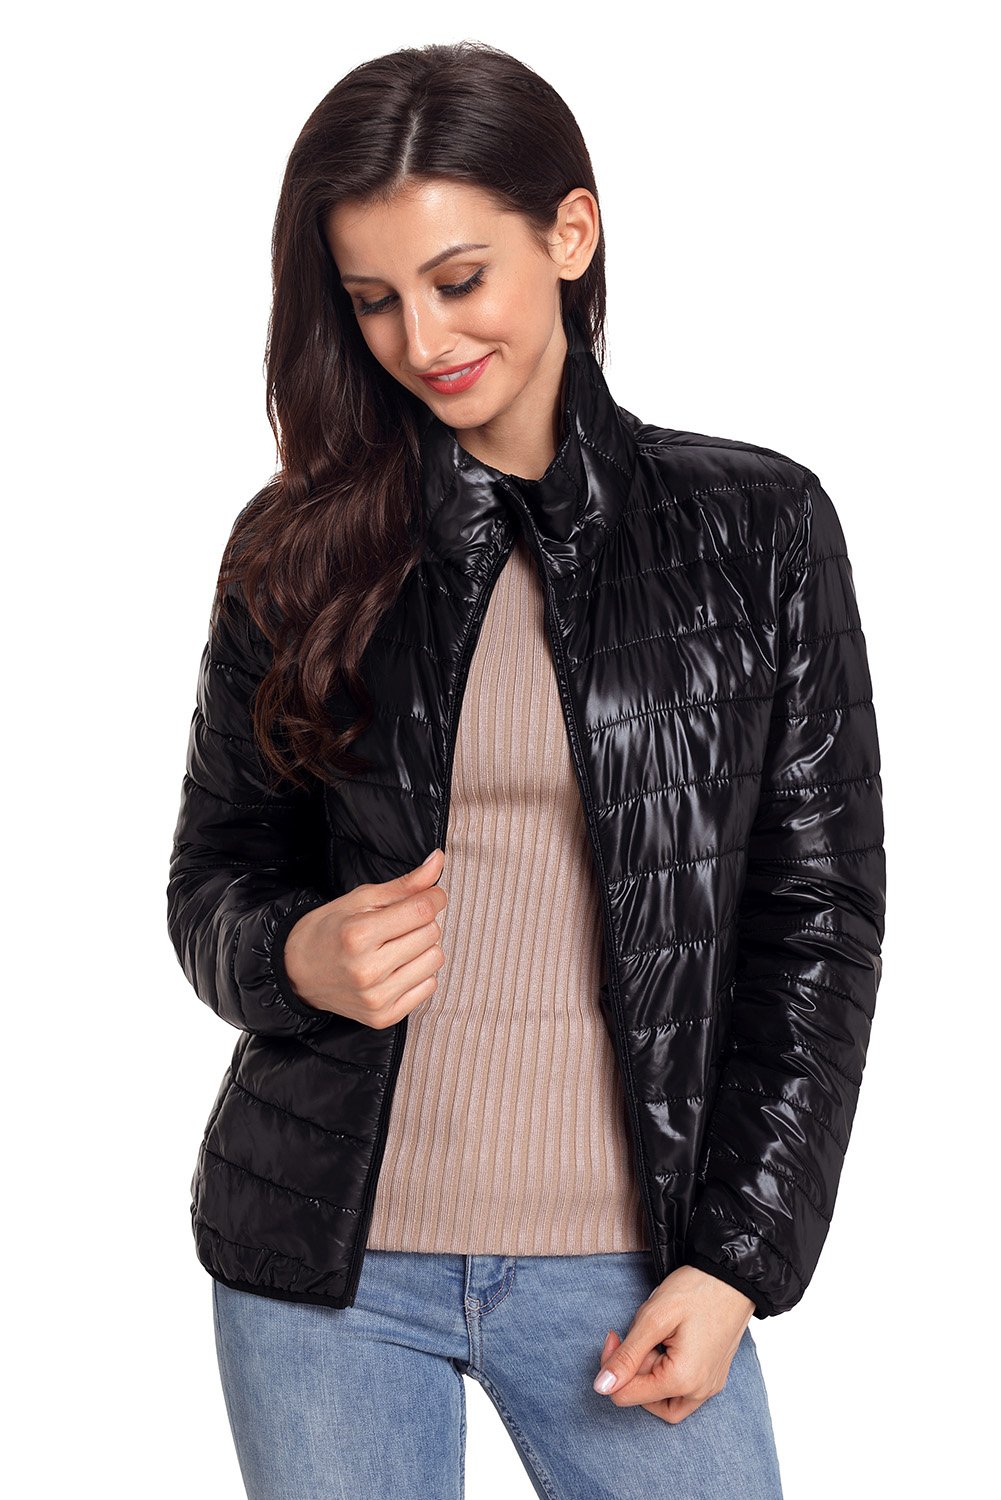 BY85126-2 Black High Neck Quilted Cotton Jacket